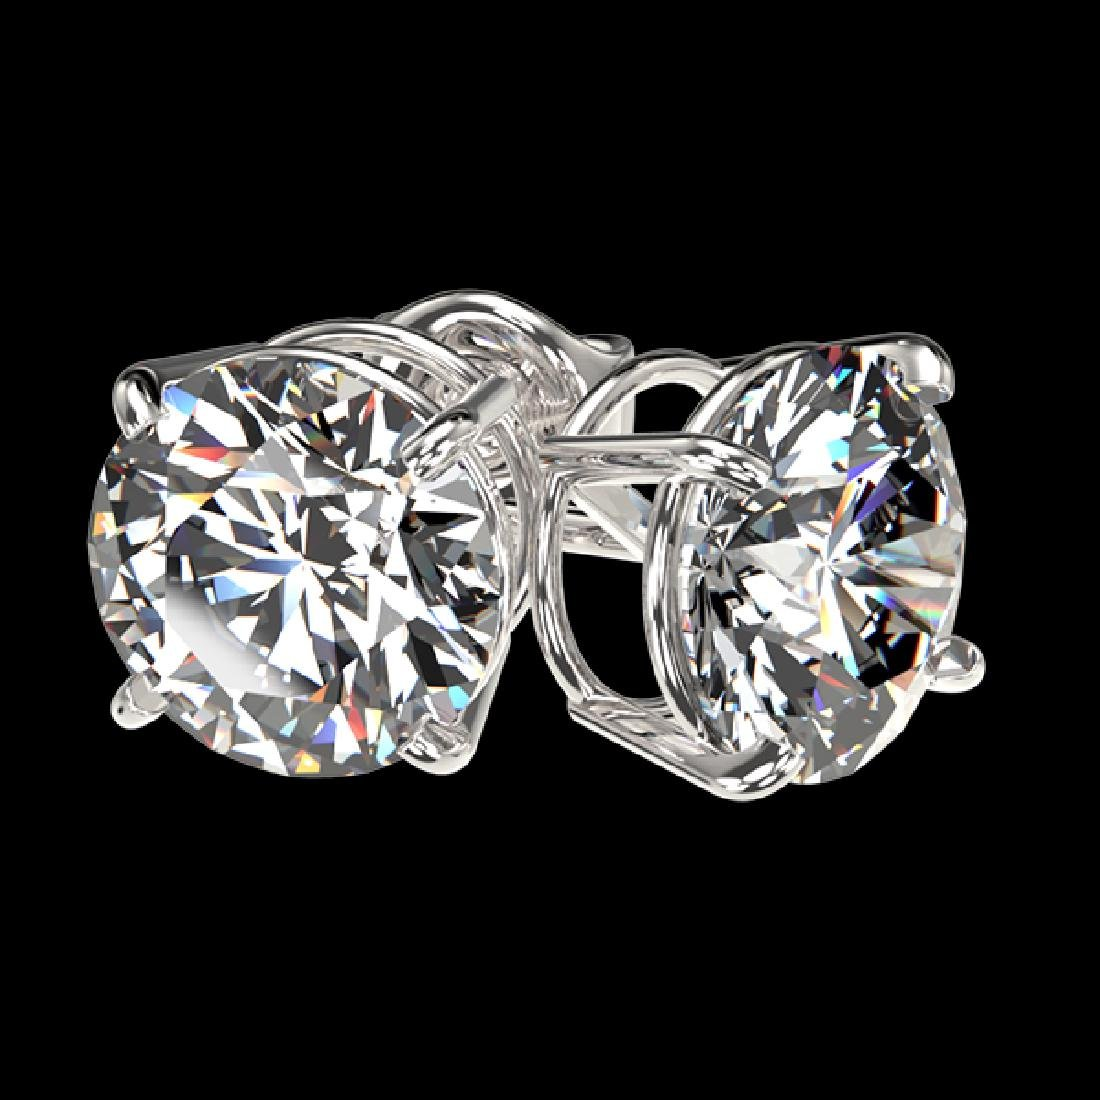 2.55 CTW Certified G-Si Quality Diamond Solitaire Stud - 3